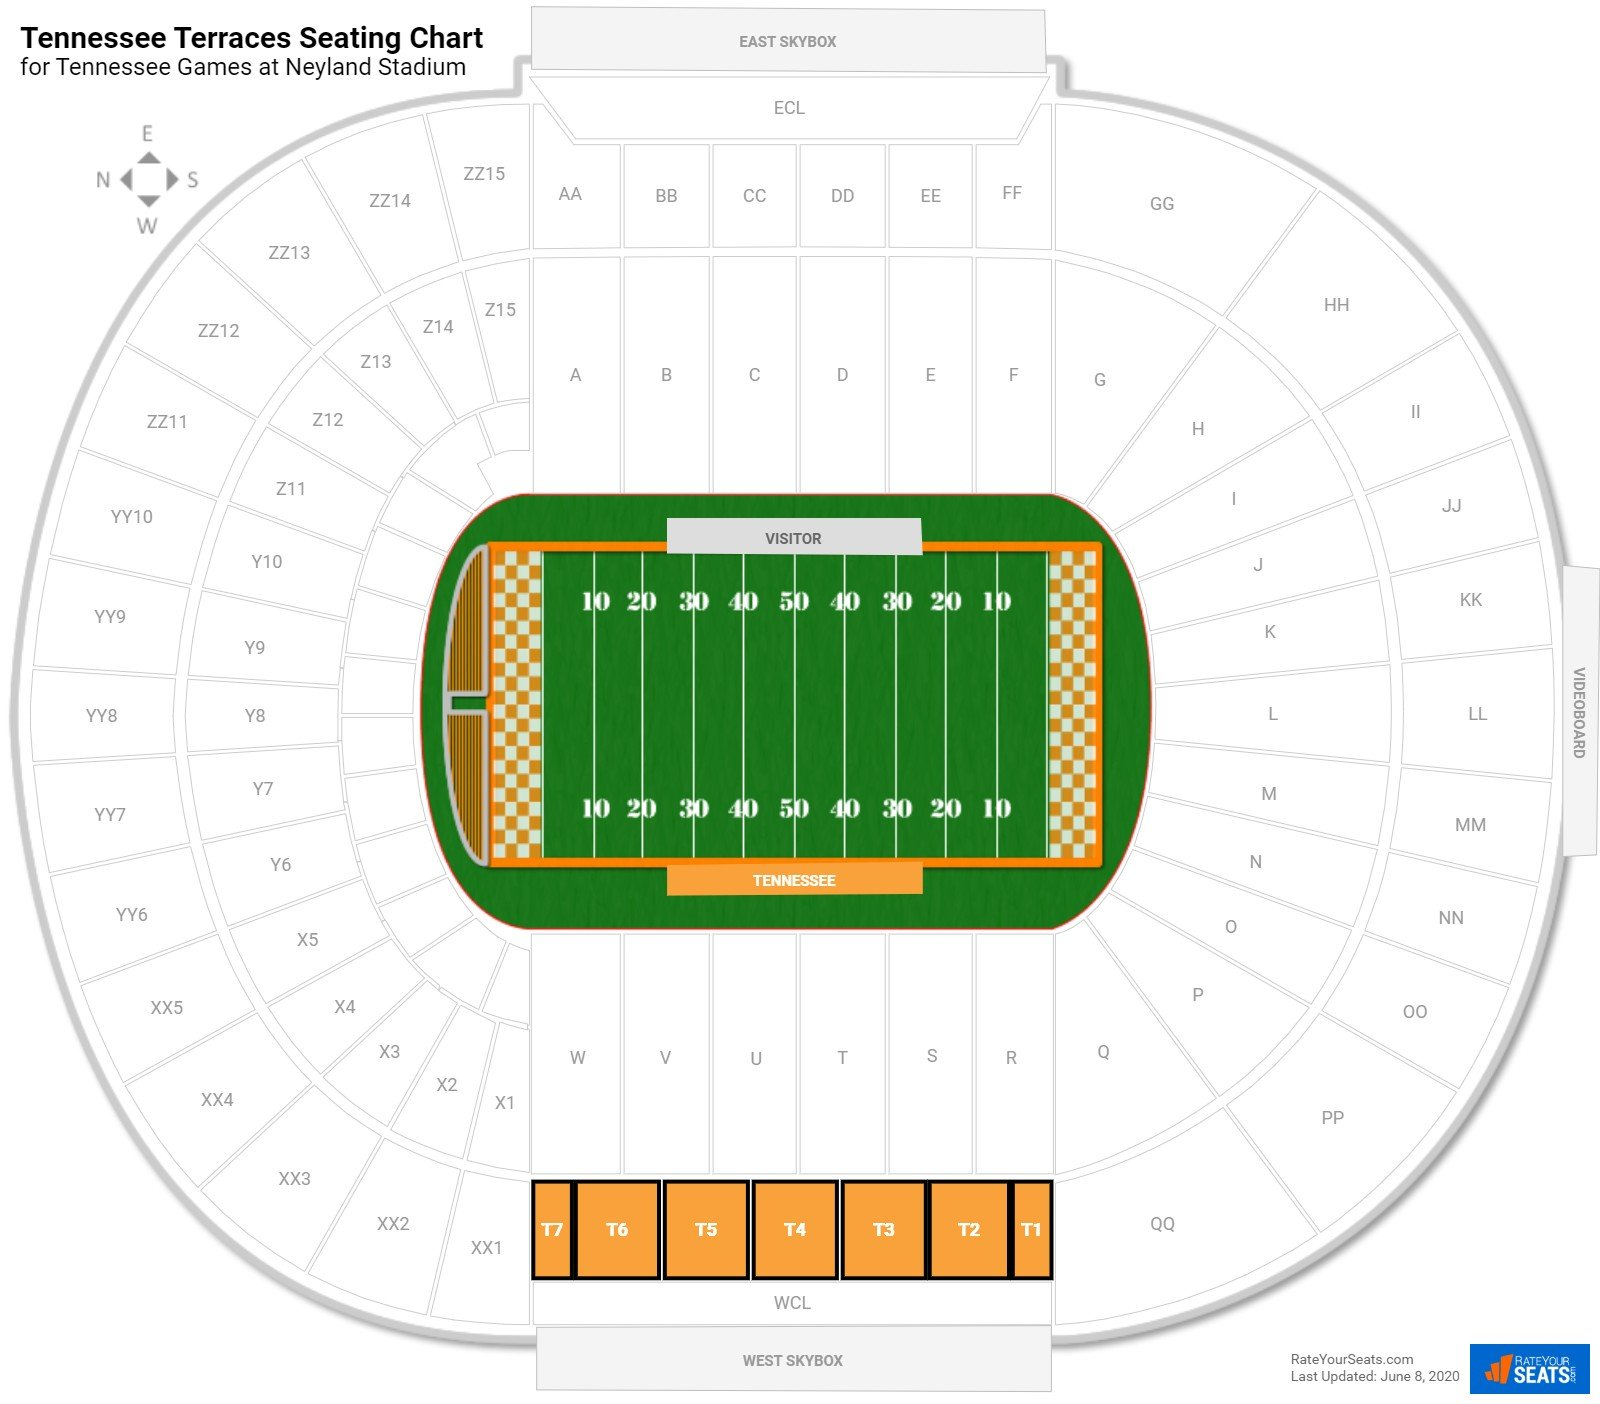 Neyland Stadium Tennessee Terraces seating chart